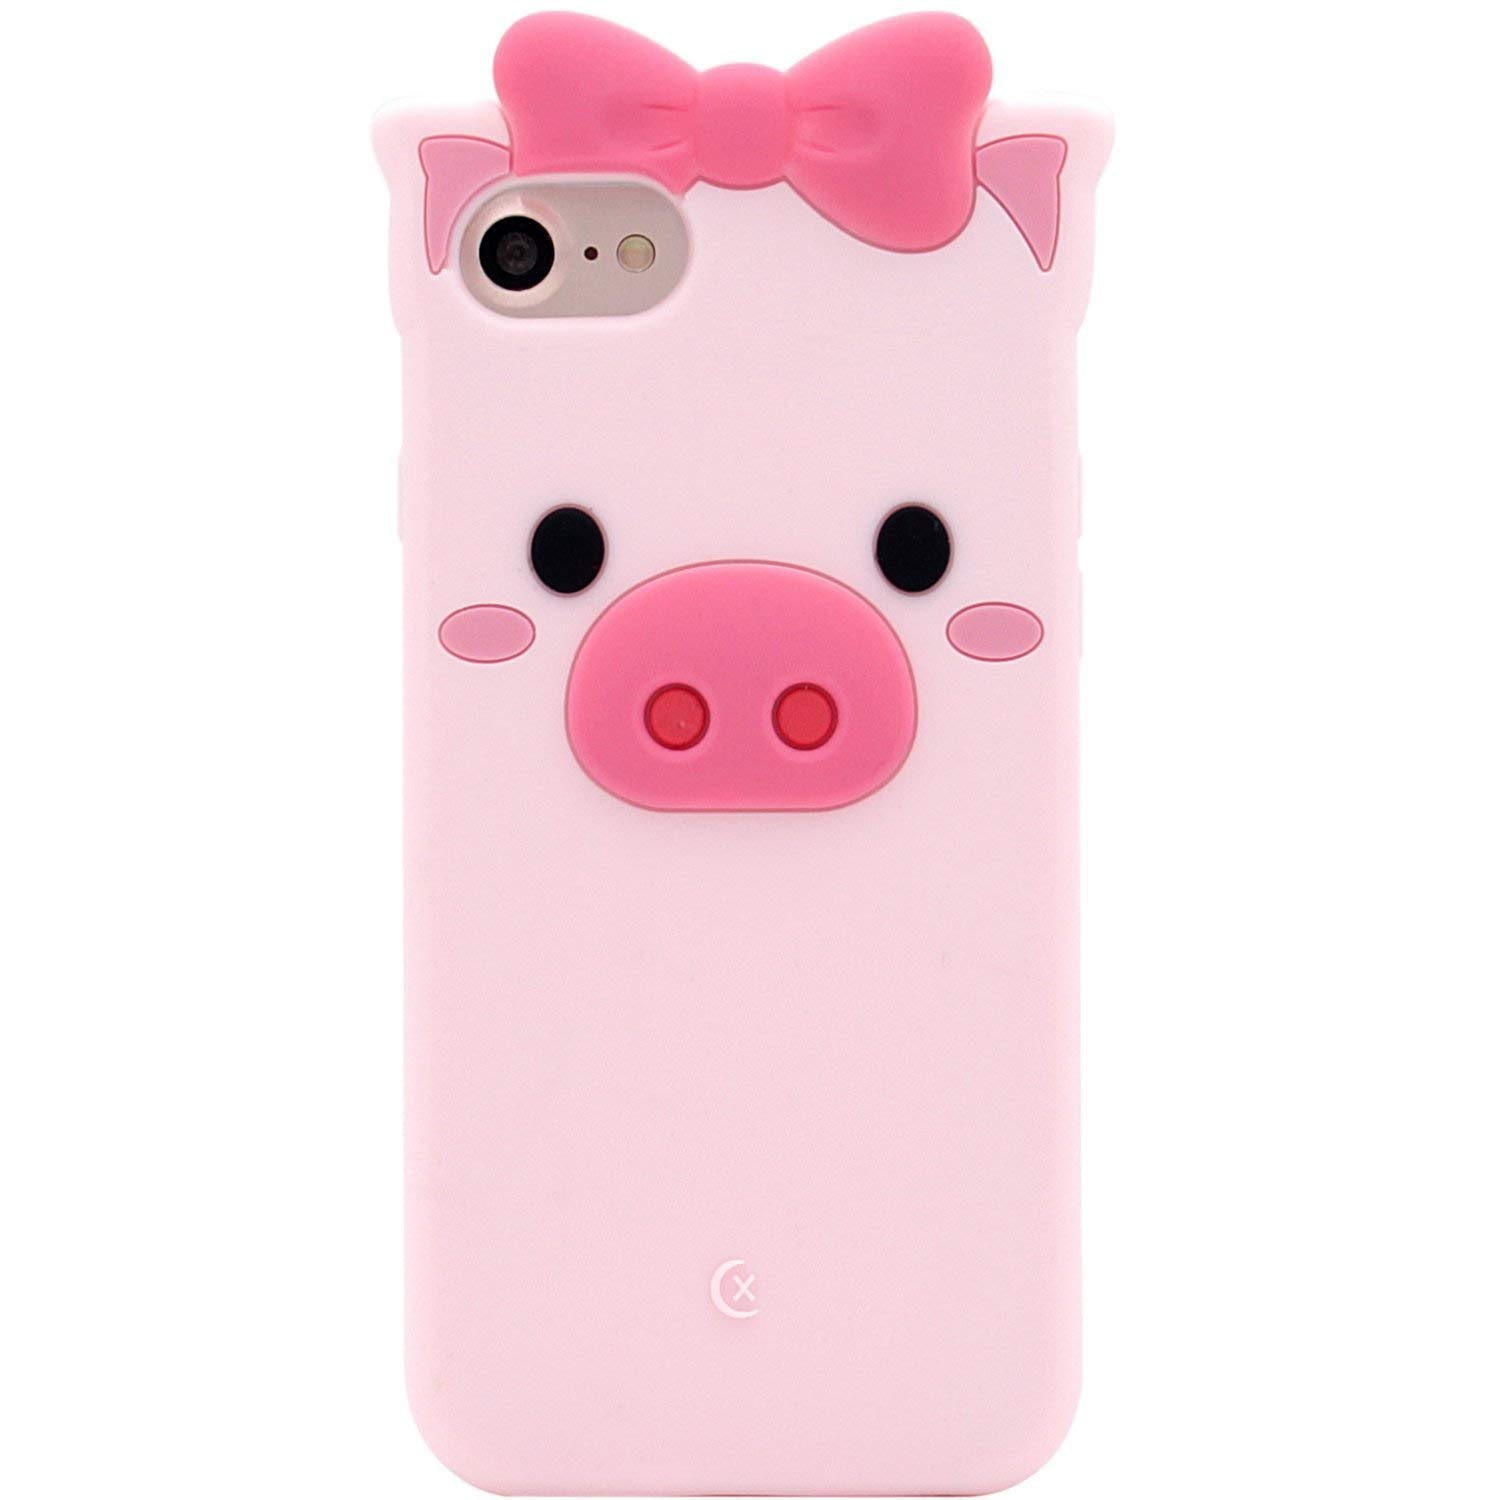 Case for iPhone 6 Plus/iPhone 6S Plus, SevenPanda Cute Piggy Cartoon Silicone Cute Adorable 3D Lovely Butterfly Pig Case Shockproof Protective Cover for iPhone 6S Plus / 6 Plus 5.5 Inch - Pink